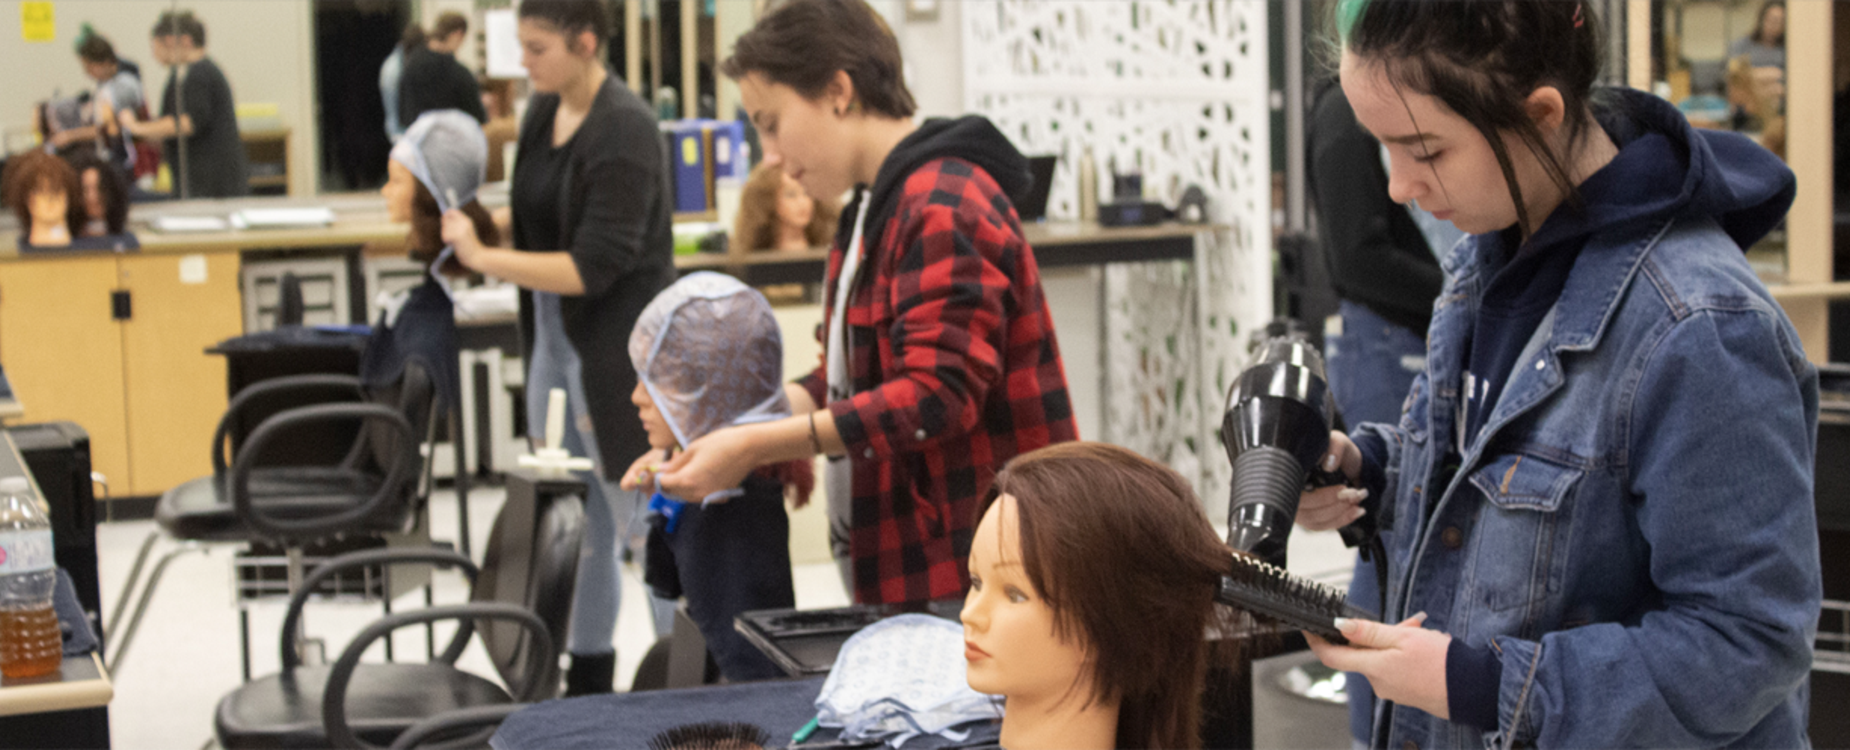 students in hairstyling